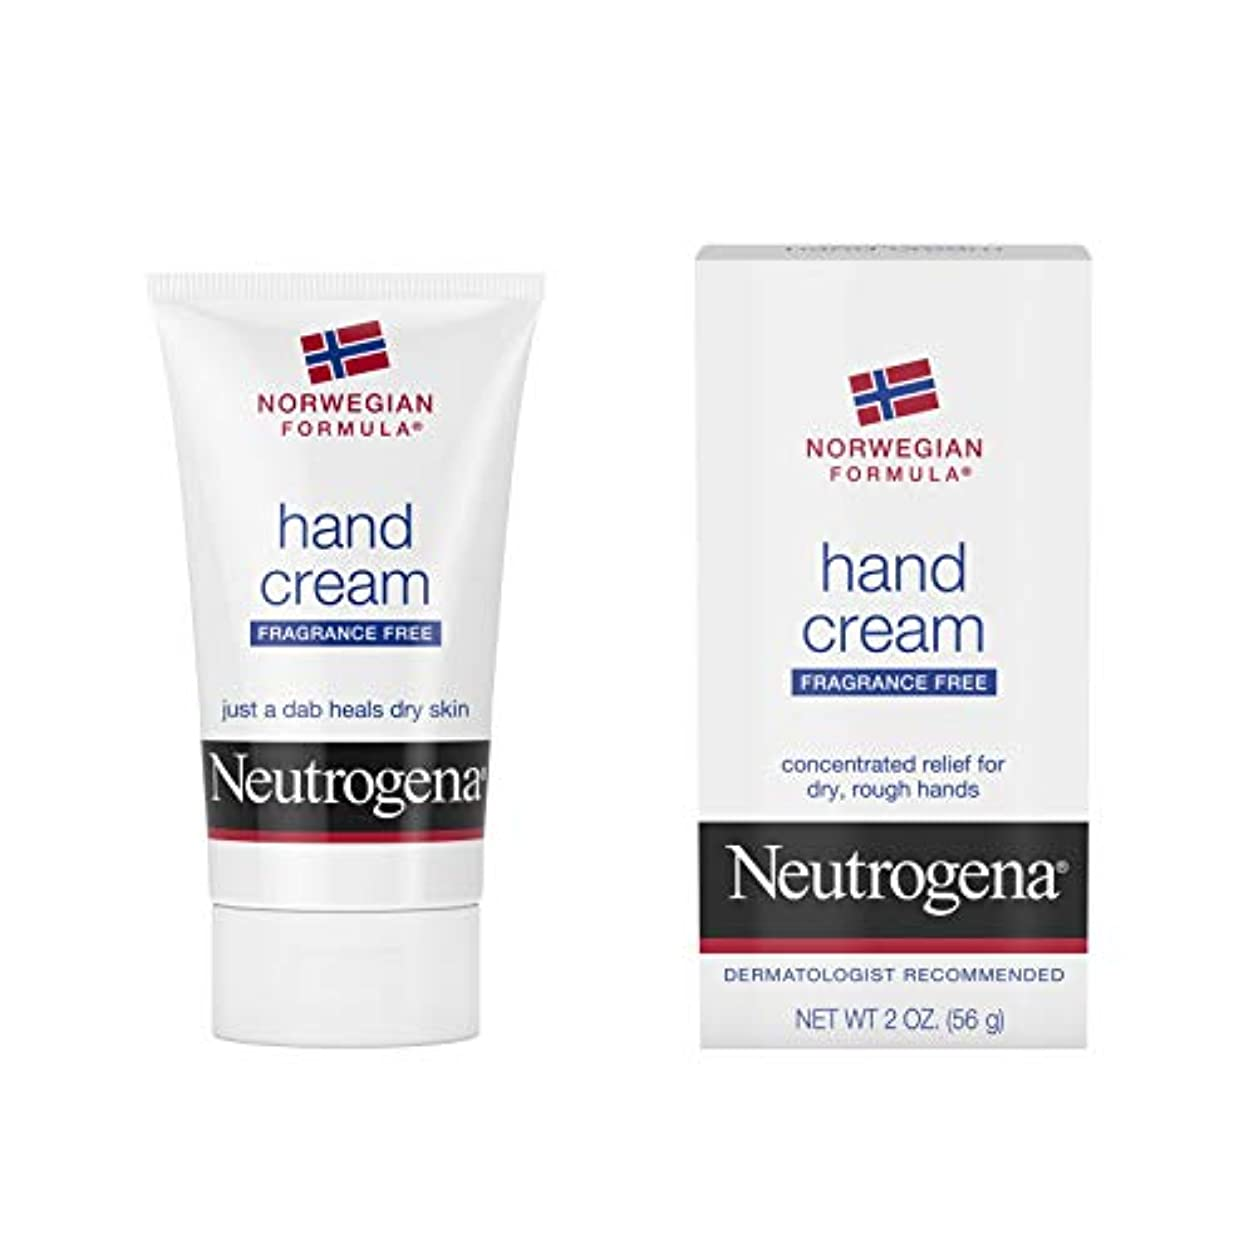 罰化学者植物学者Neutrogena Norwegian Formula Hand Cream Fragrance-Free 60 ml (並行輸入品)